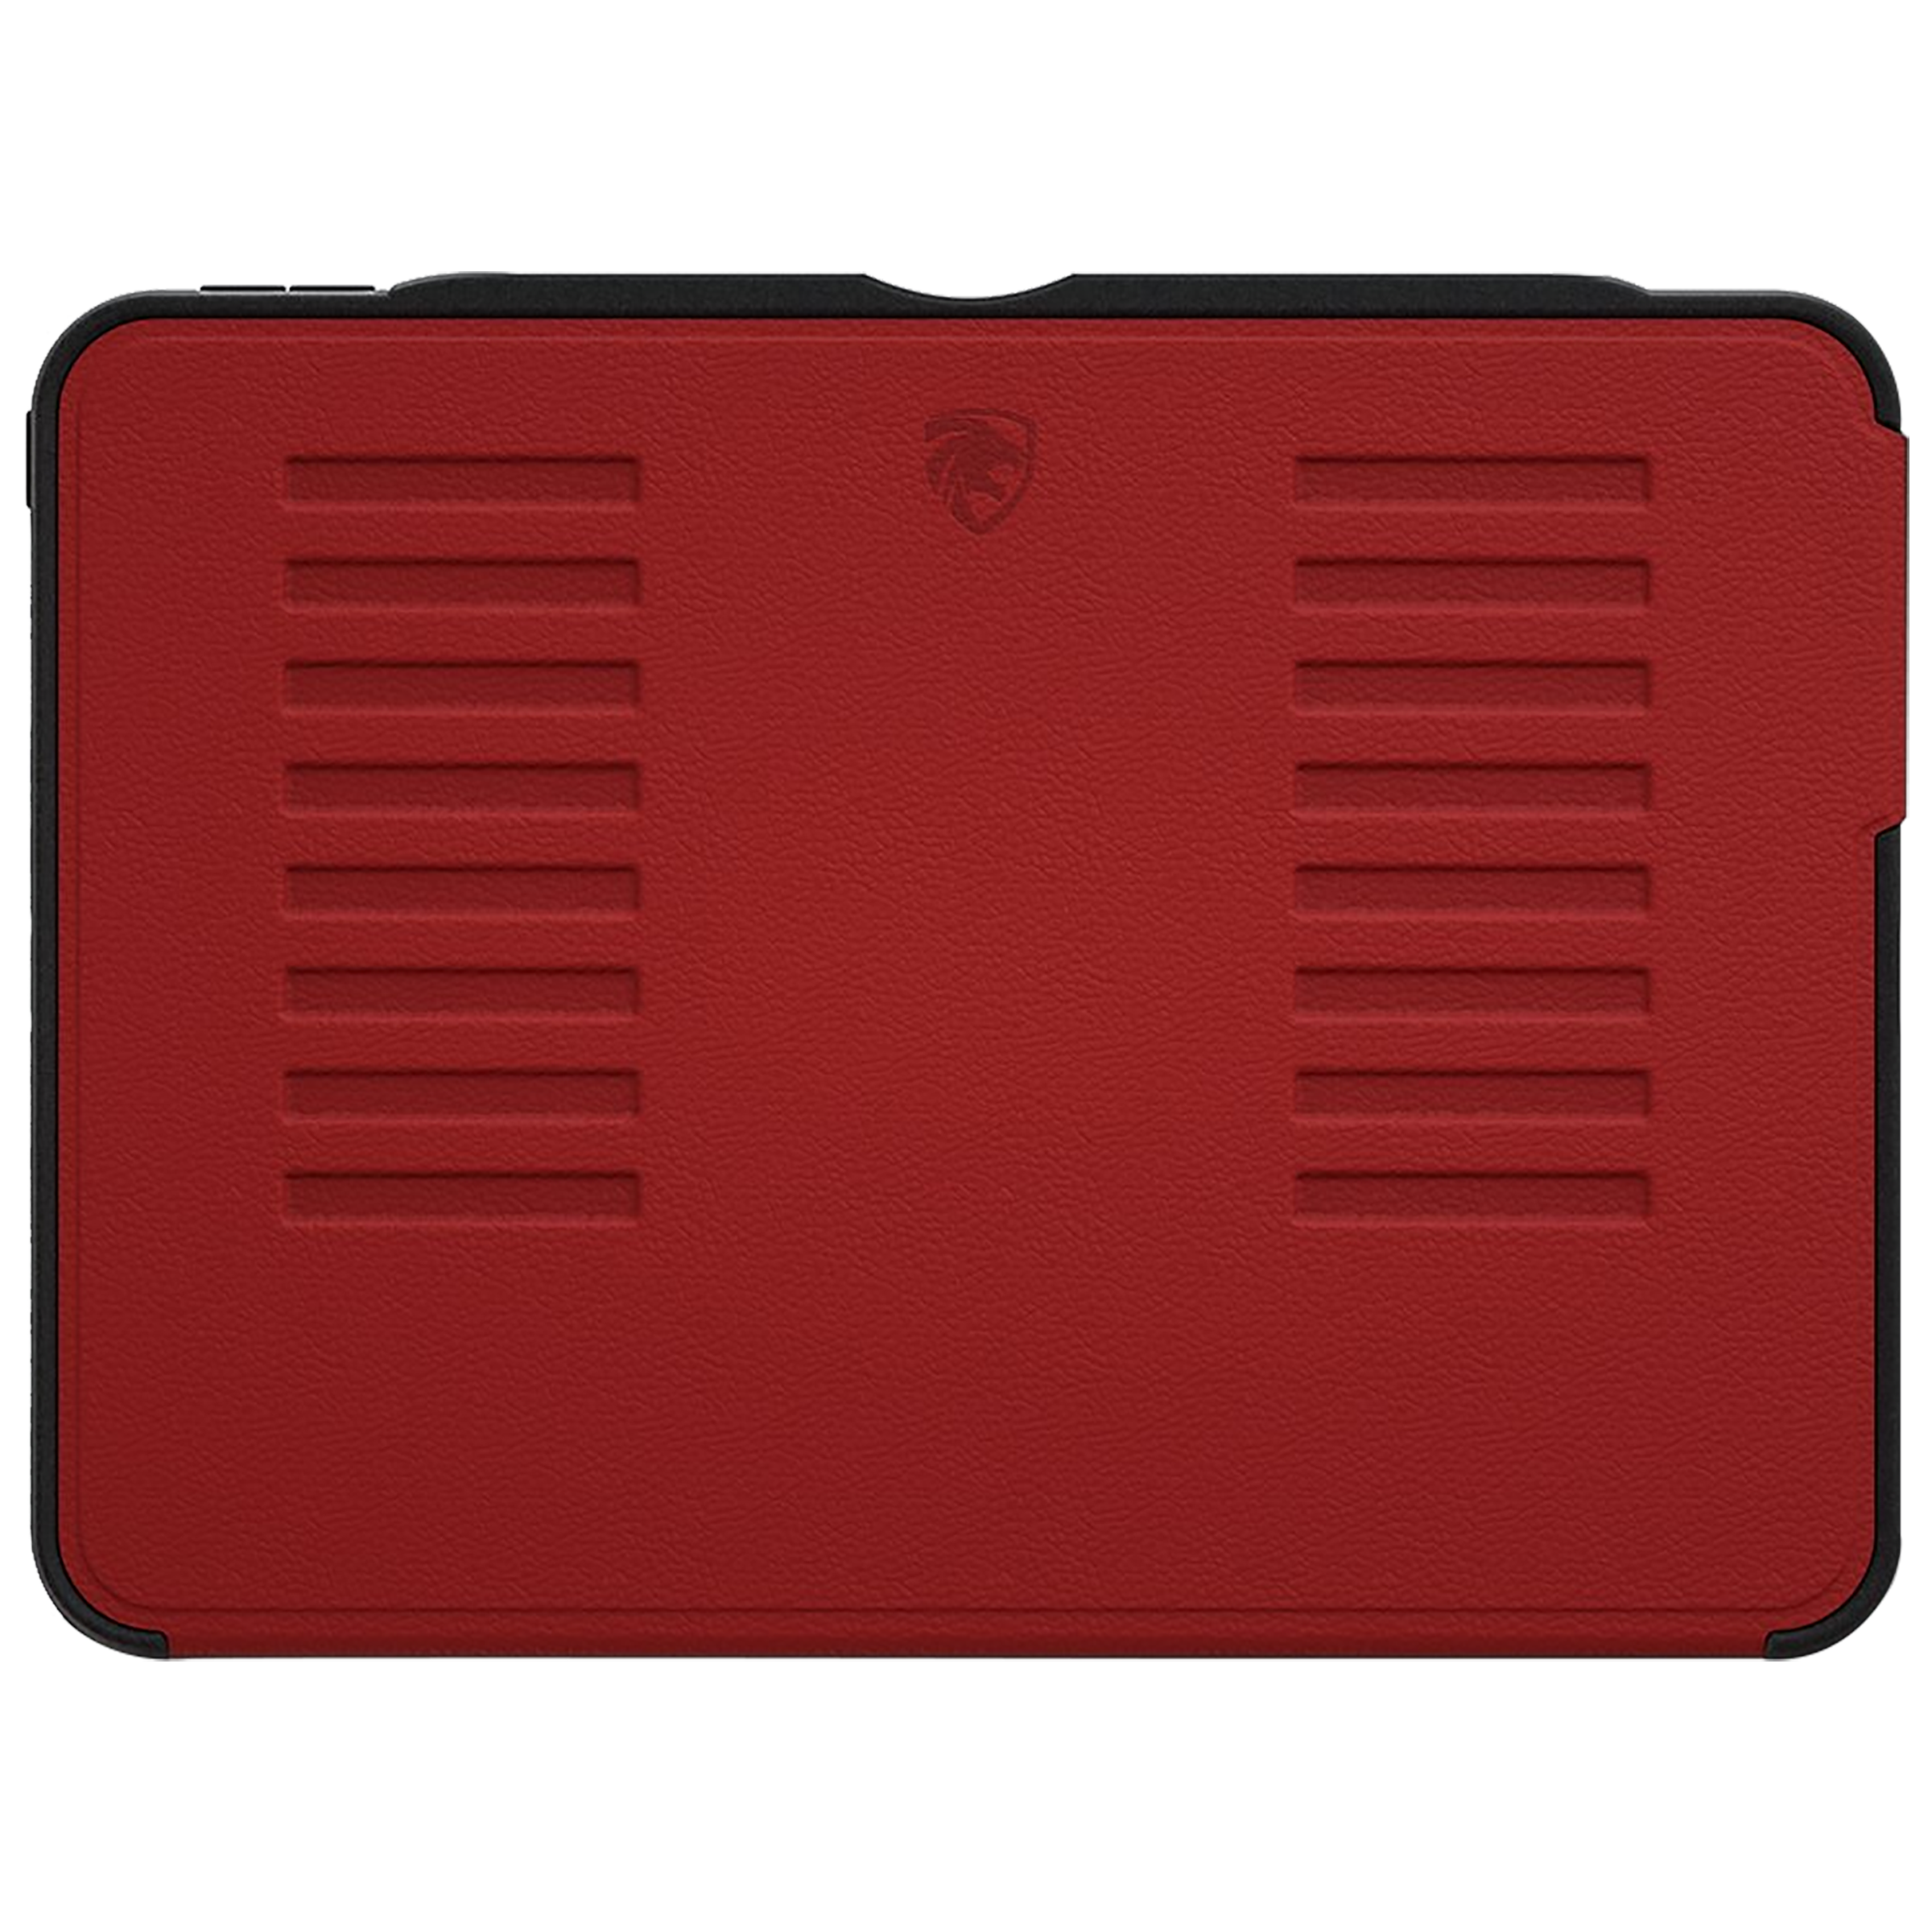 Zugu Alpha Polycarbonate Back Case with Stand For iPad Pro 11 (2nd Gen) (Soft Microfiber Interior, ZG-20-11R, Red)_1